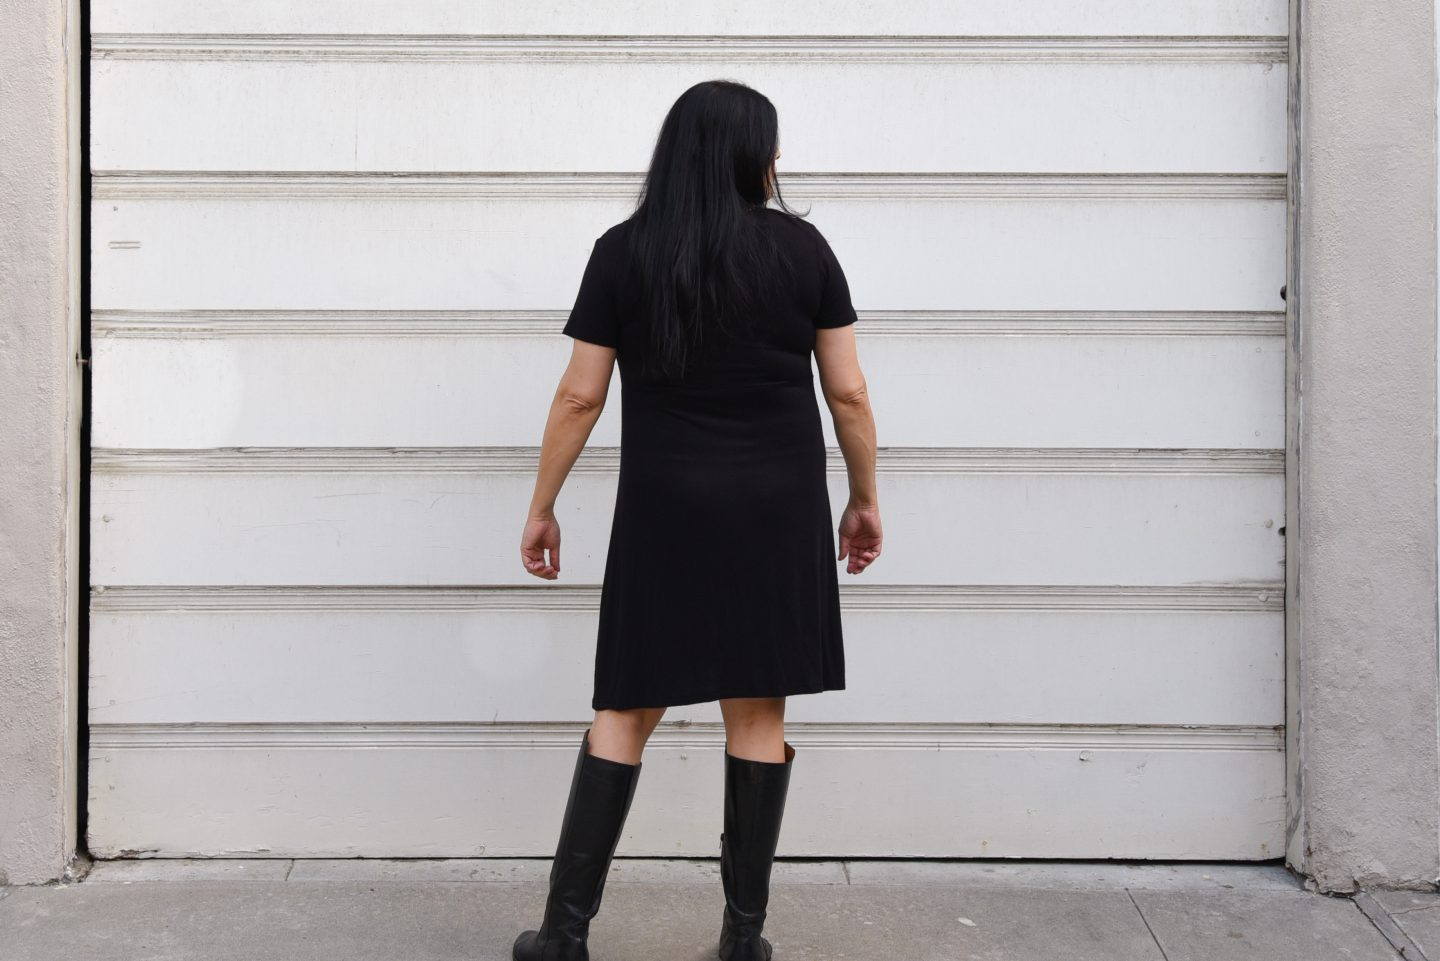 Image of a woman with her back to the camera with long black hair and red lipstick wearing a black knit empire-waist dress with black kitty print standing in front of a white garage door.